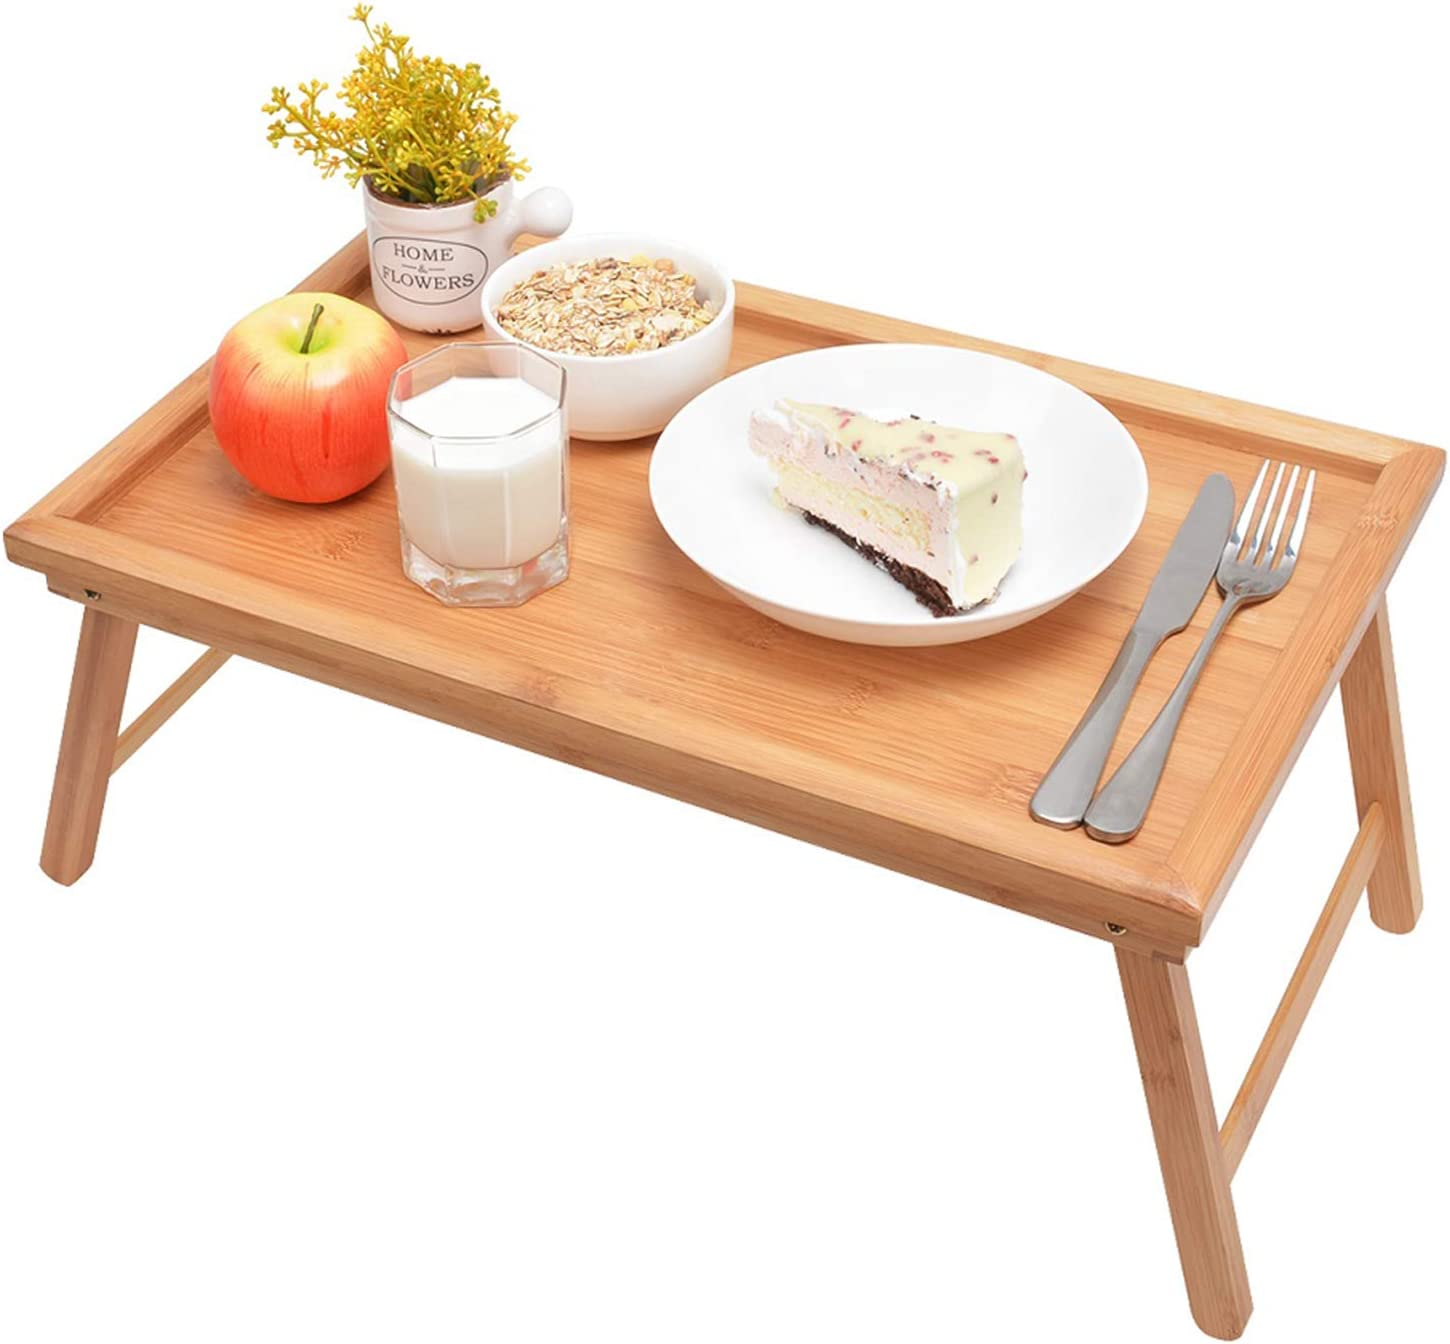 Zhuoyue Bamboo Bed Tray With Folding Legs Lap Tray Breakfast Tray Great For Breakfast In Bed Or Eating Tray